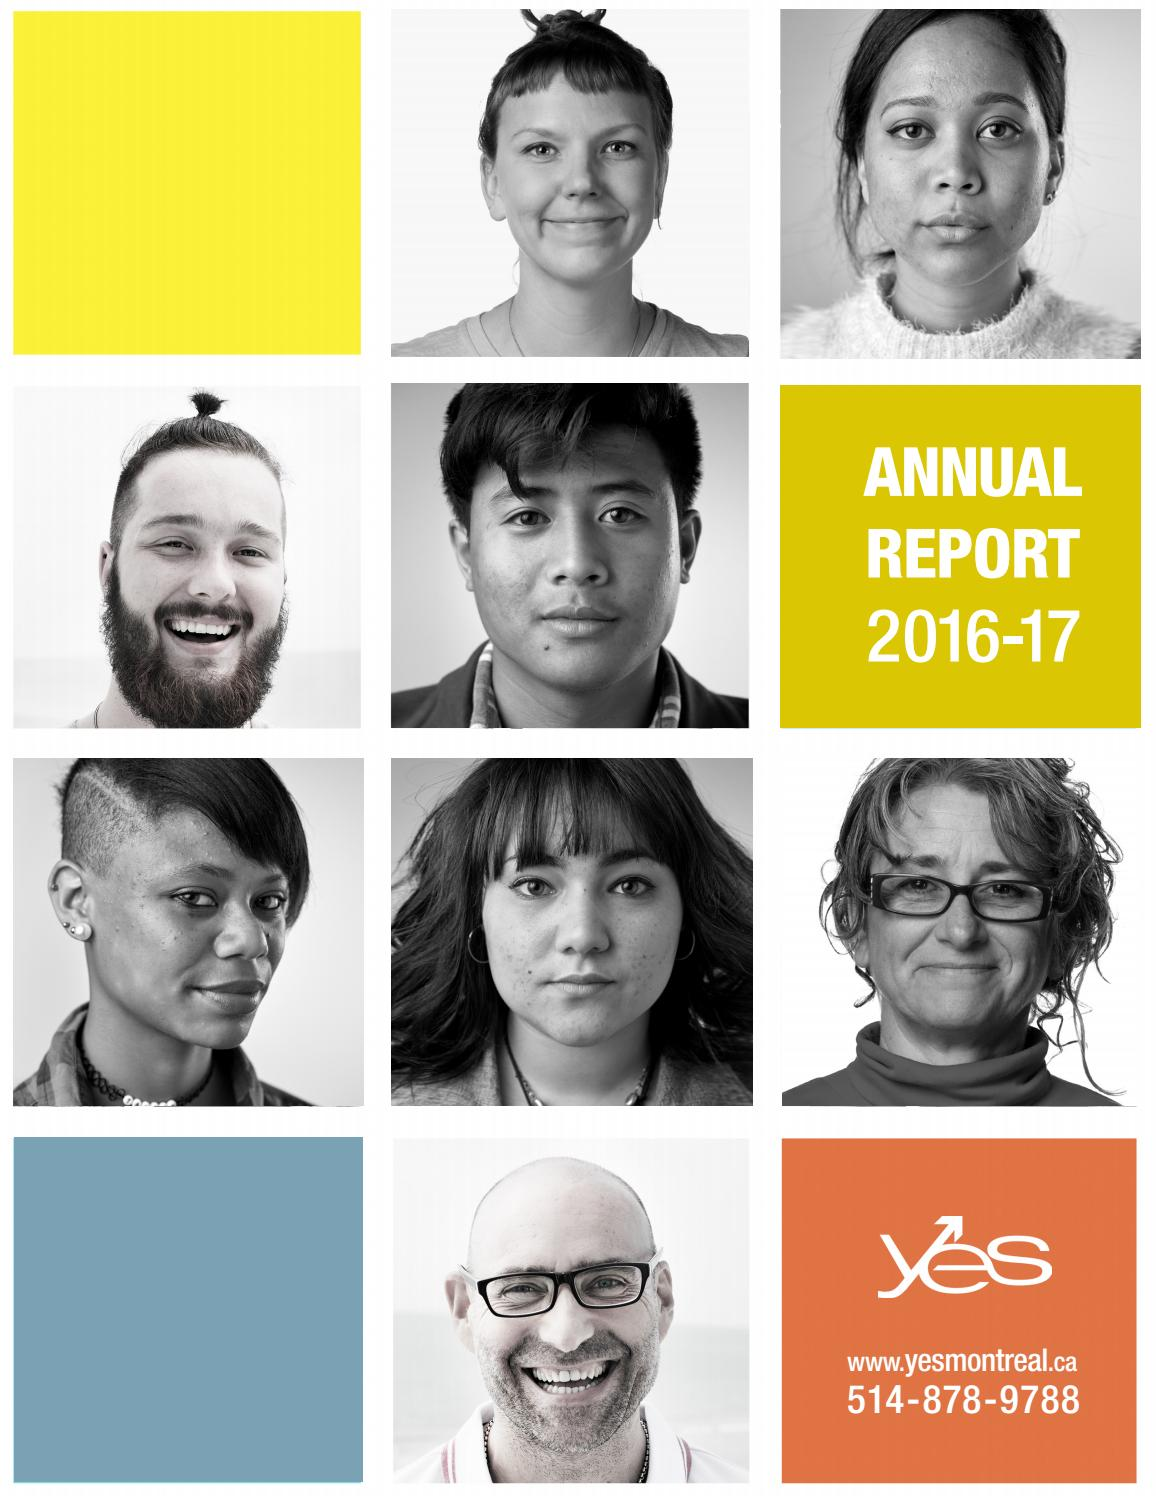 YES Annual Report 2016-17 by Youth Employment Services (YES